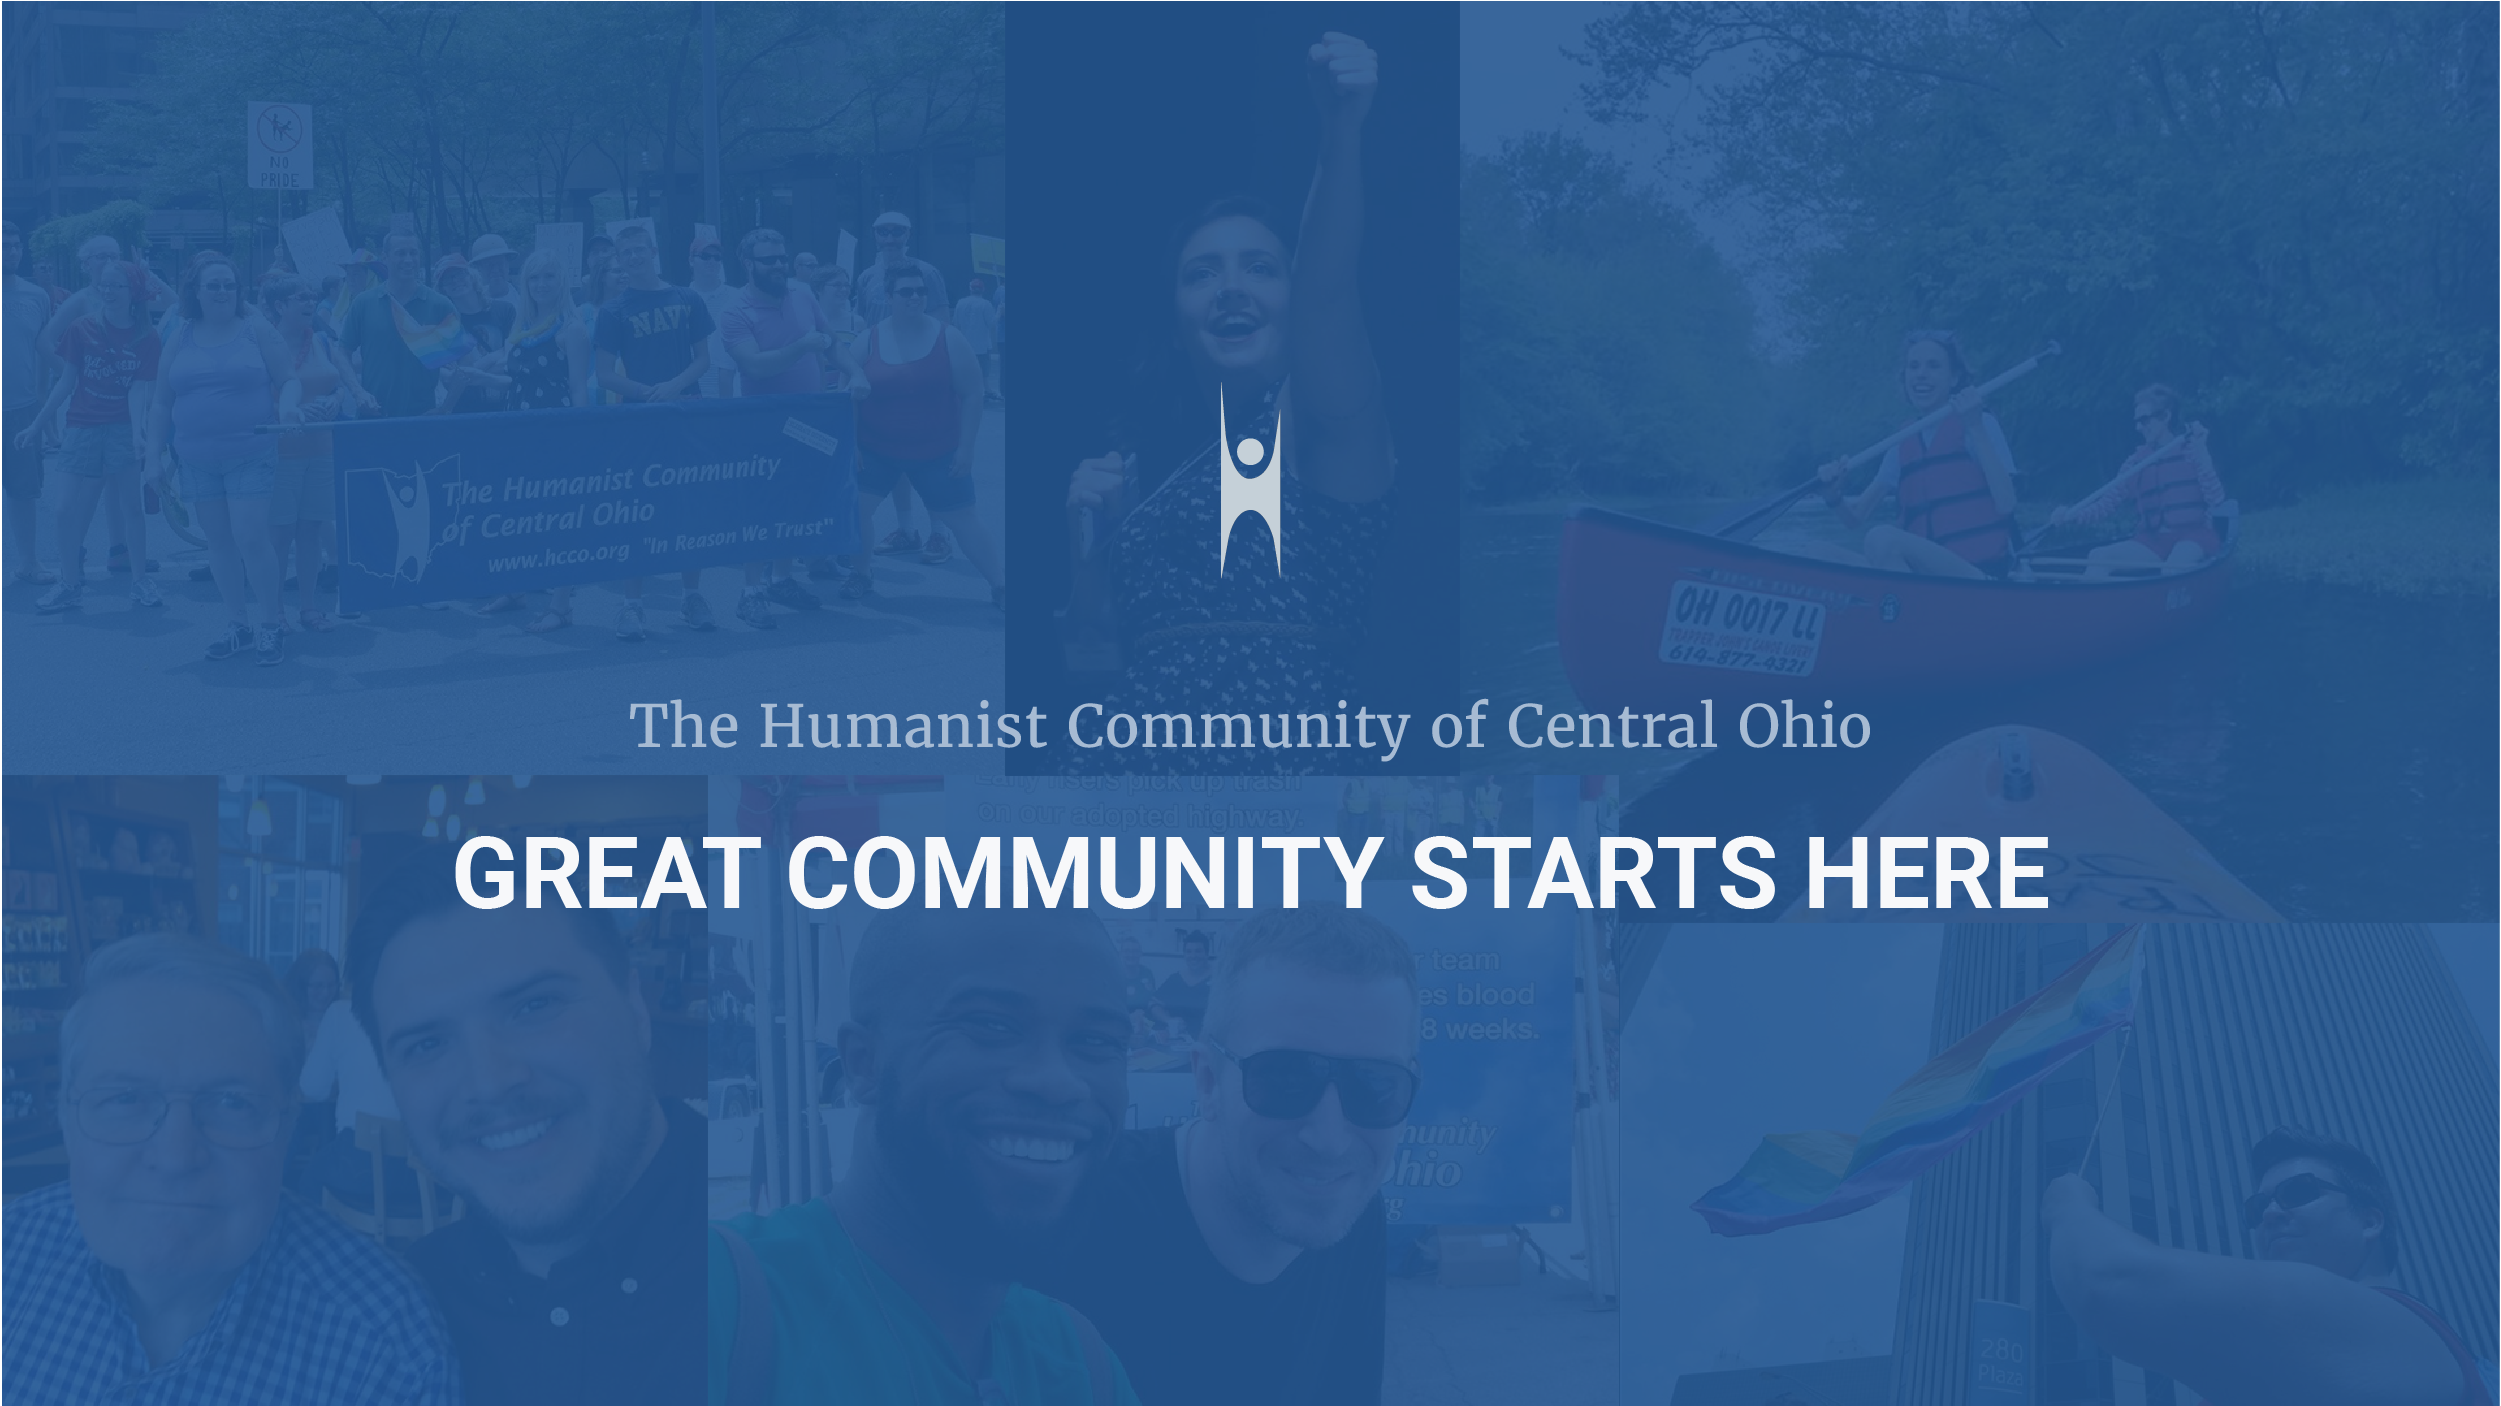 The Humanist Community of Central Ohio